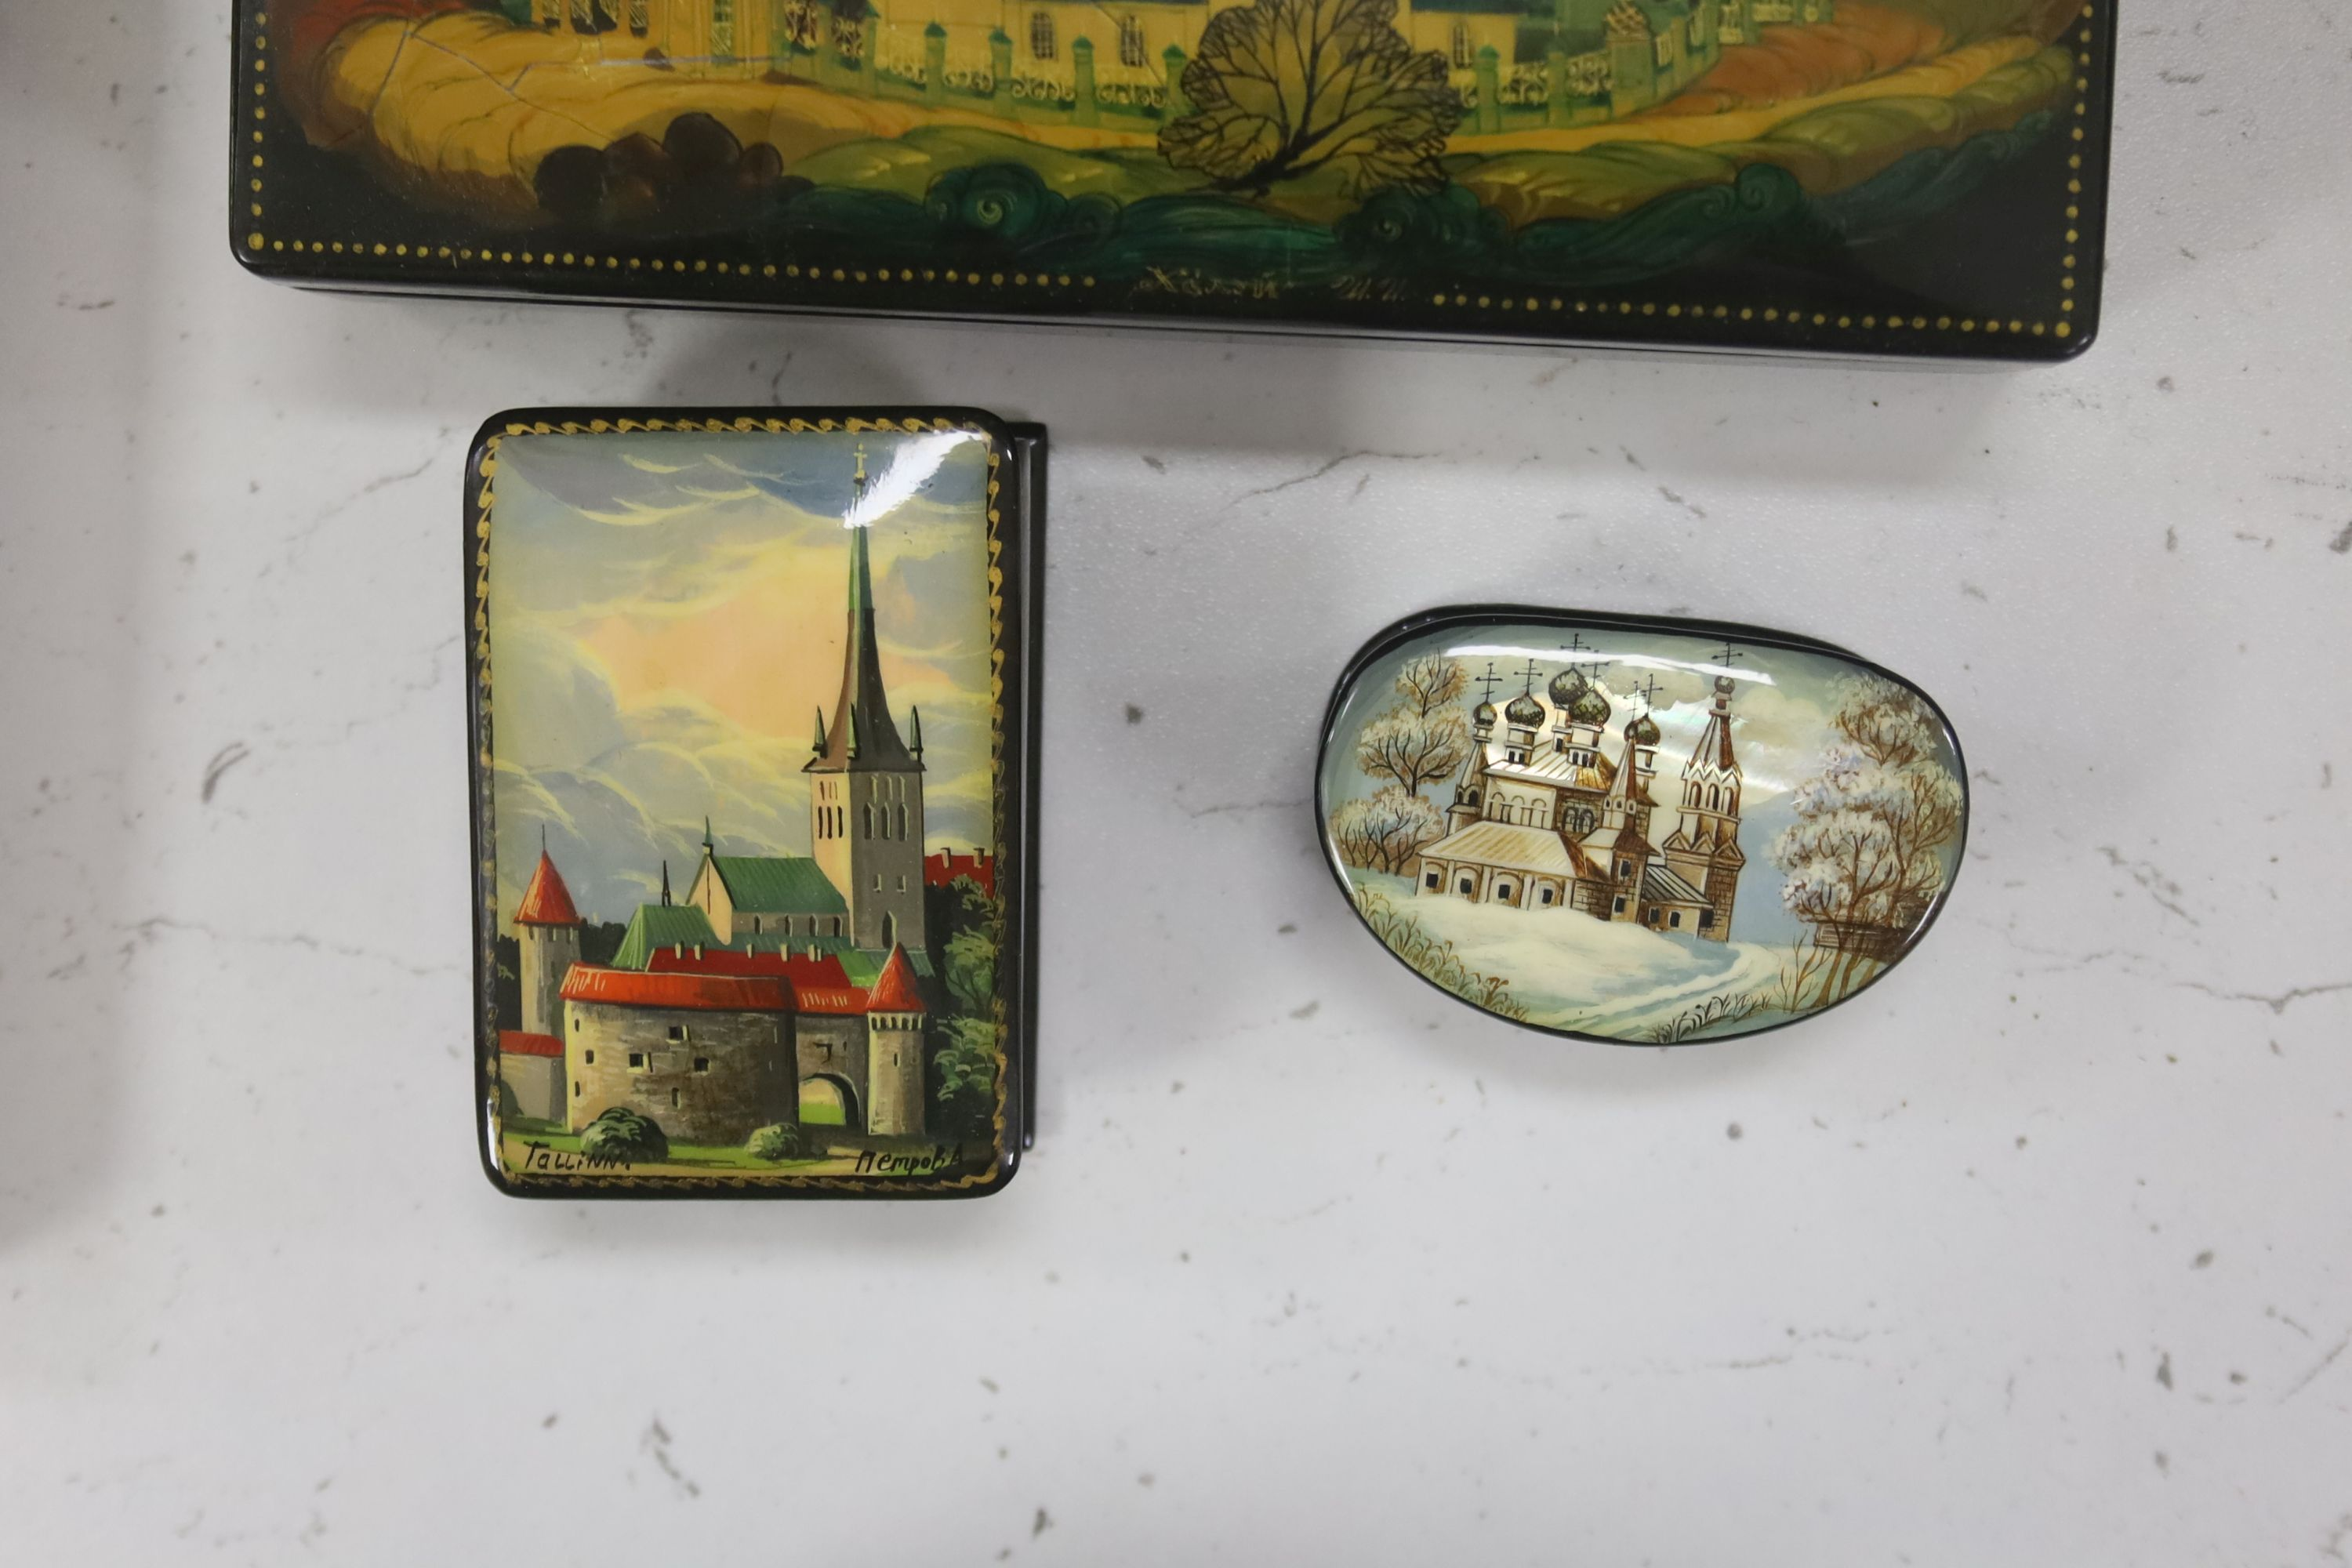 Six Russian Papier mache boxes, each decorated with churches or cathedrals, largest 17 cm - Image 2 of 6